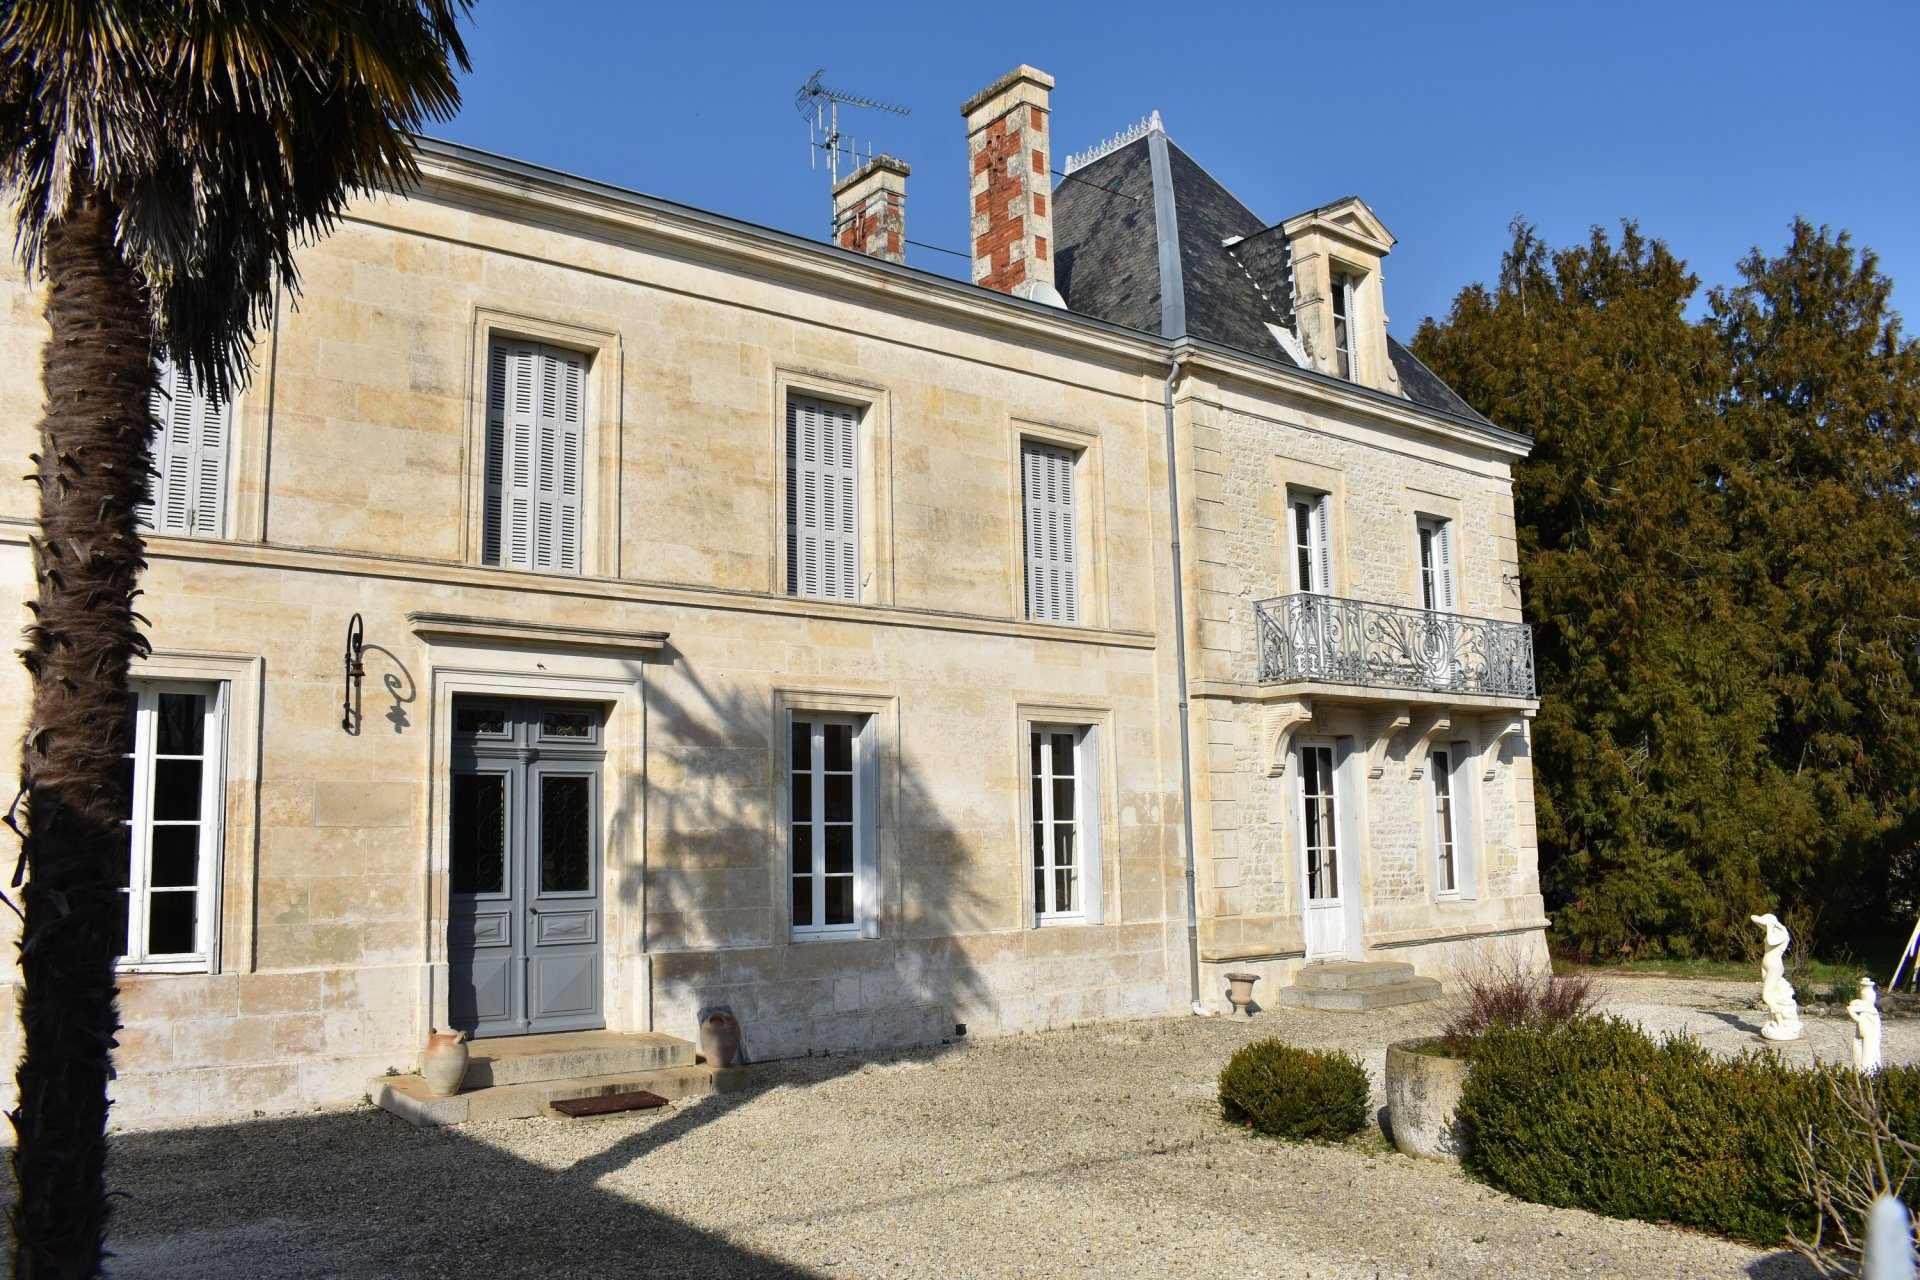 Unspoilt wine growers manoir with one hectare, outbuildings and loads of potential